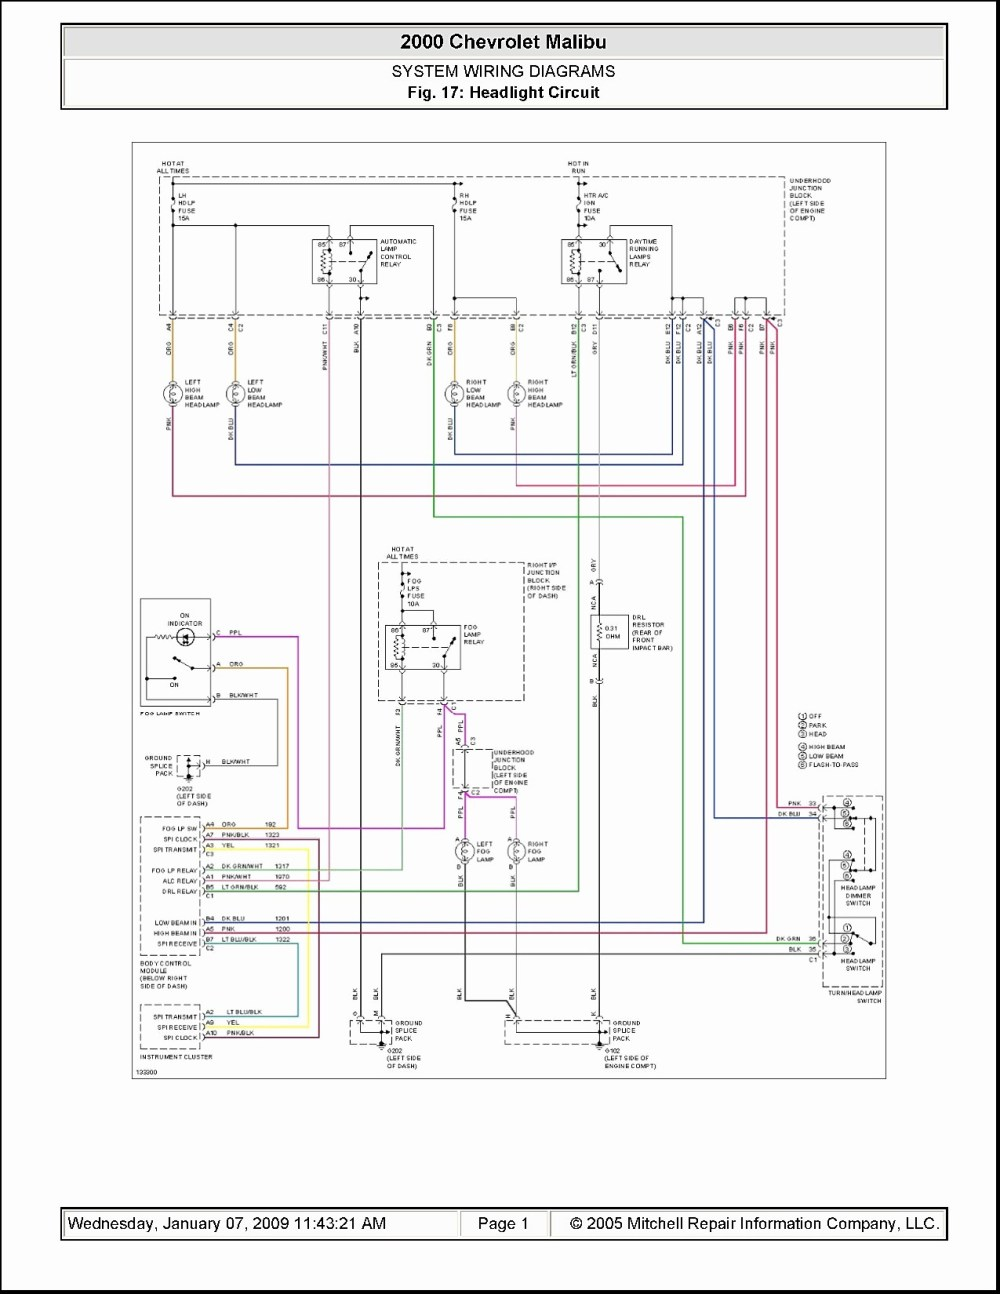 Grafik 2002 Kia Sedona Instrument Cluster Fuse Box Diagram Amotmx Hd Quality Clamdiagrams Bruxelles Enscene Be